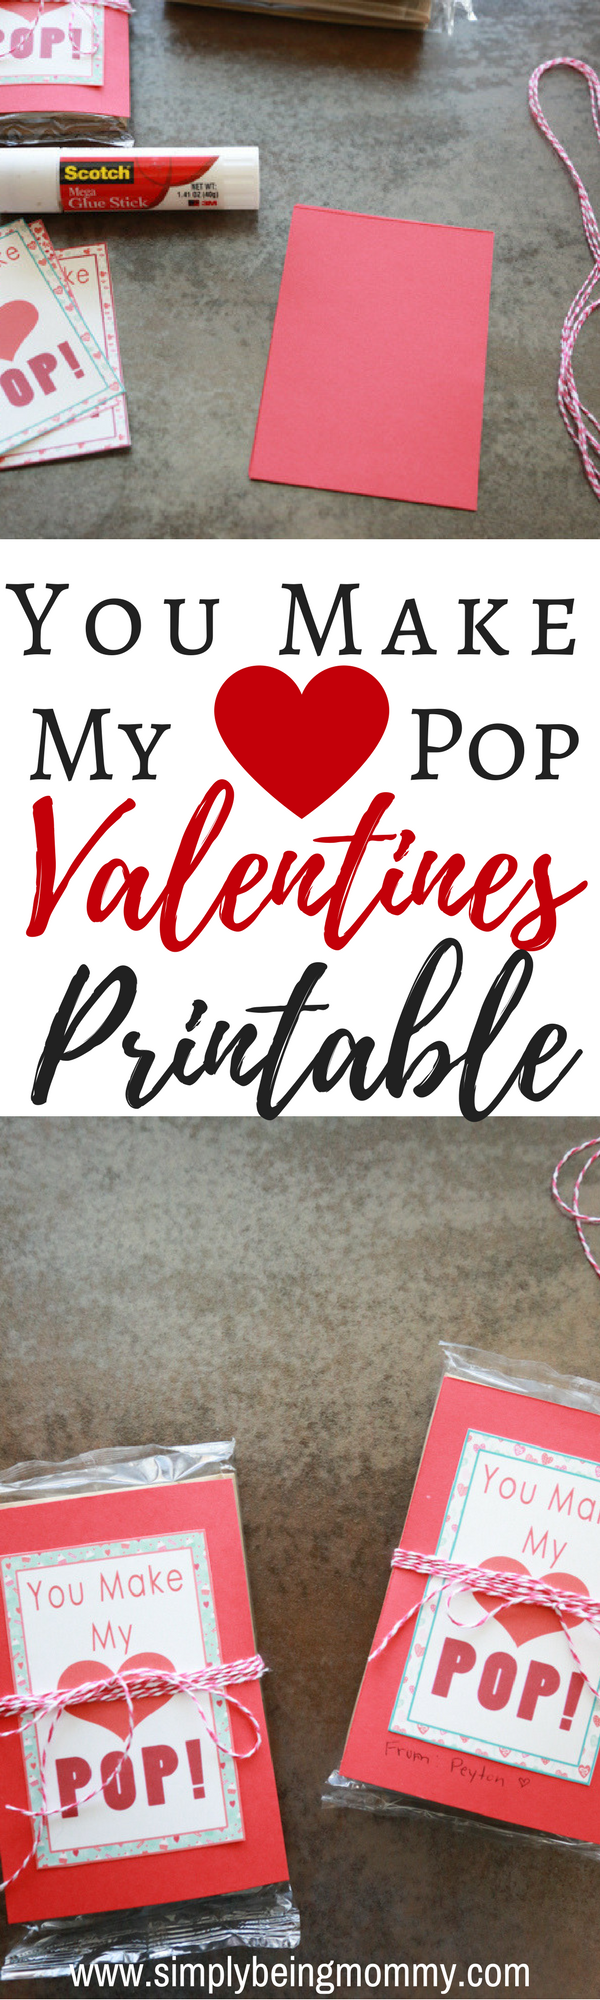 photo relating to Popcorn Valentine Printable called By yourself Produce My Center Pop Valentines + Printable Very easily Becoming